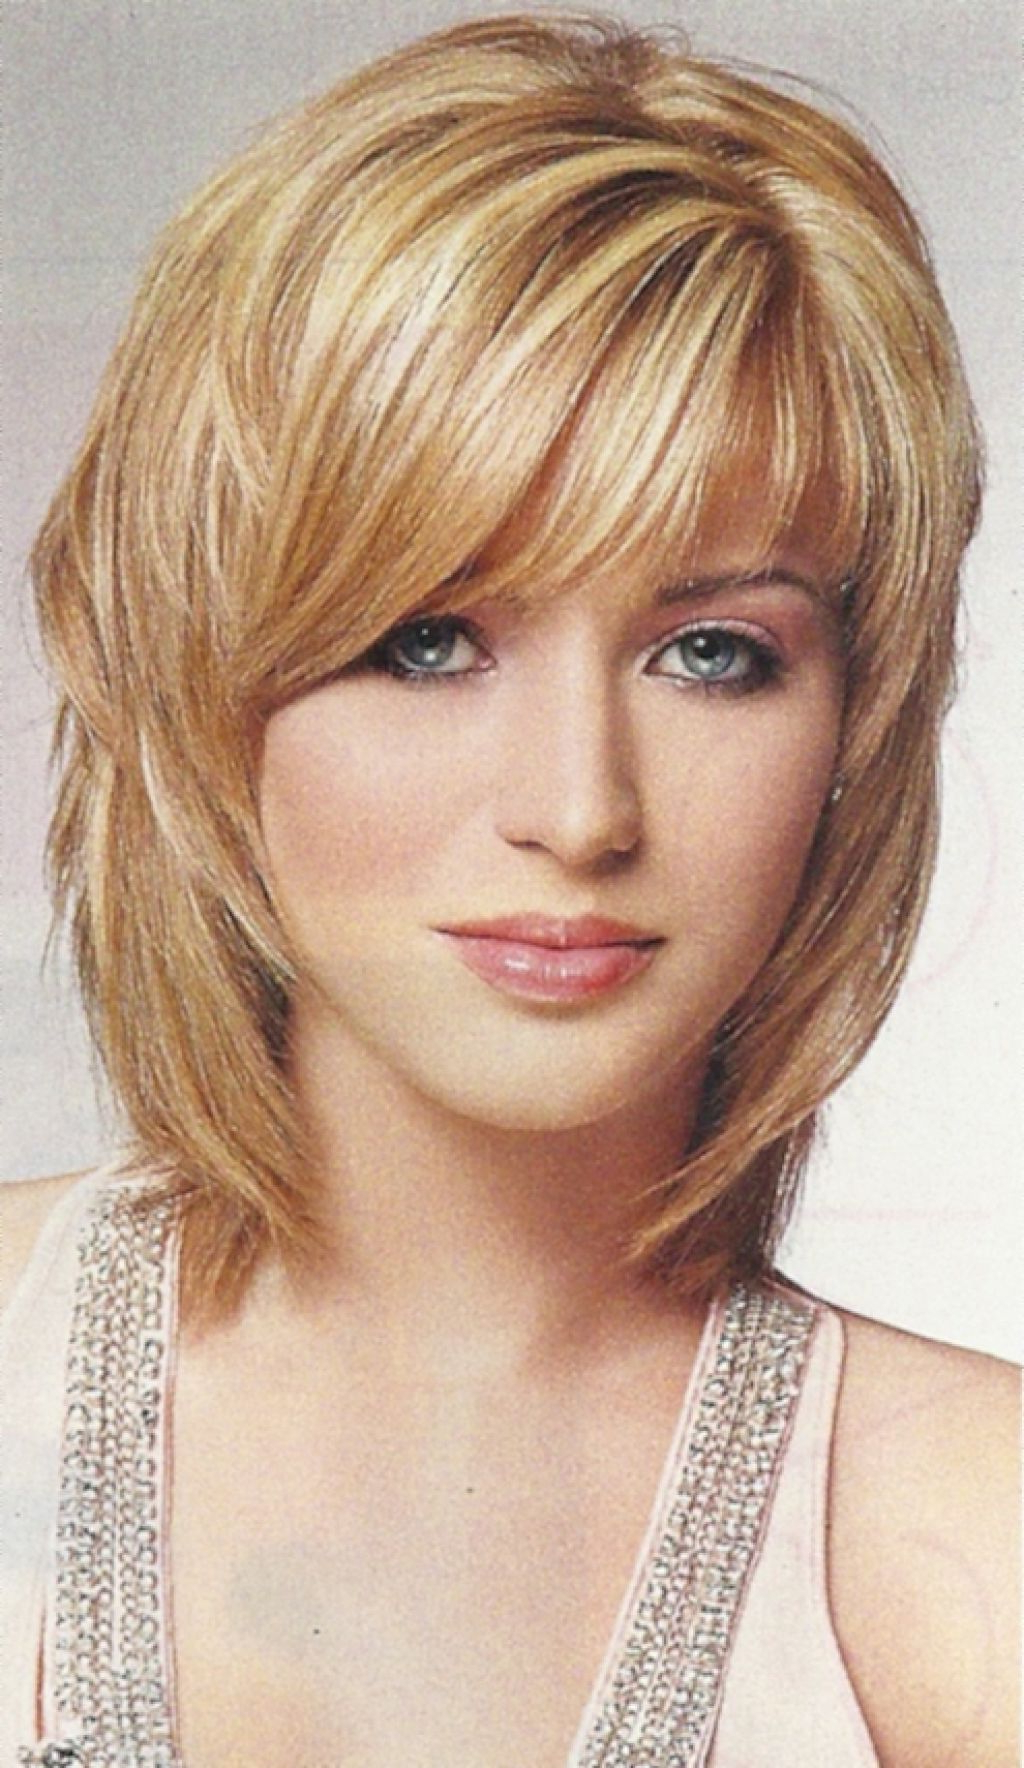 Cute Medium Short Hairstyles – Hairstyle For Women & Man For Cute Medium Short Haircuts (View 4 of 25)